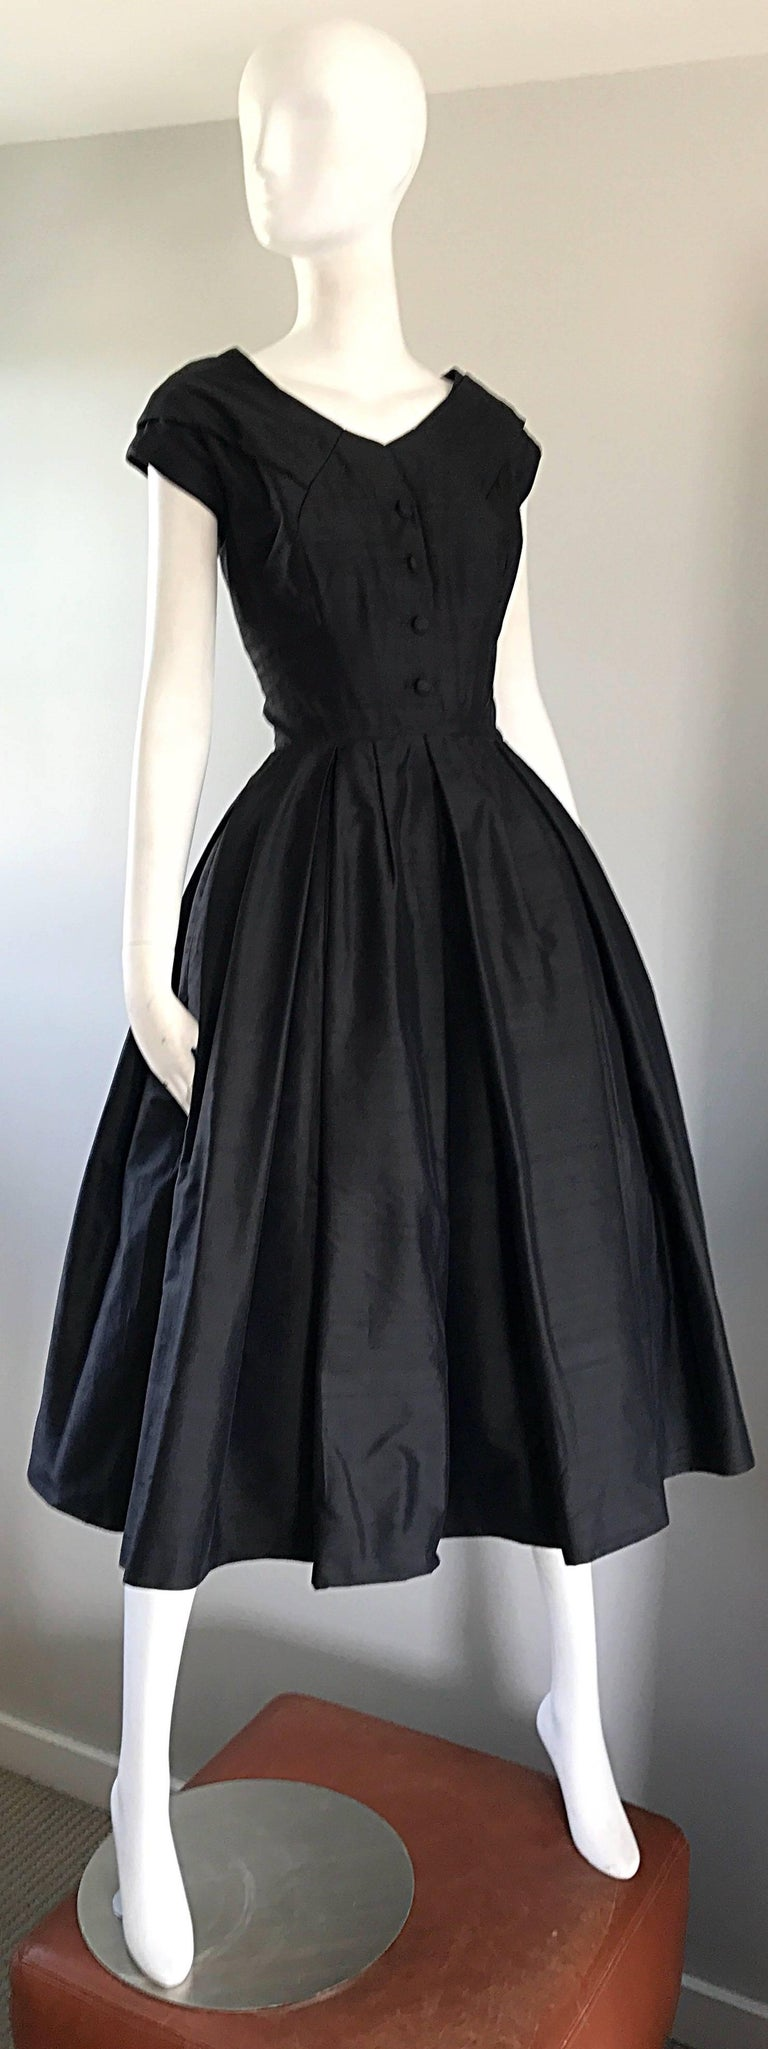 Rare 1950s Christian Dior Haute Couture ' New Look ' Vintage Black Silk Dress 5